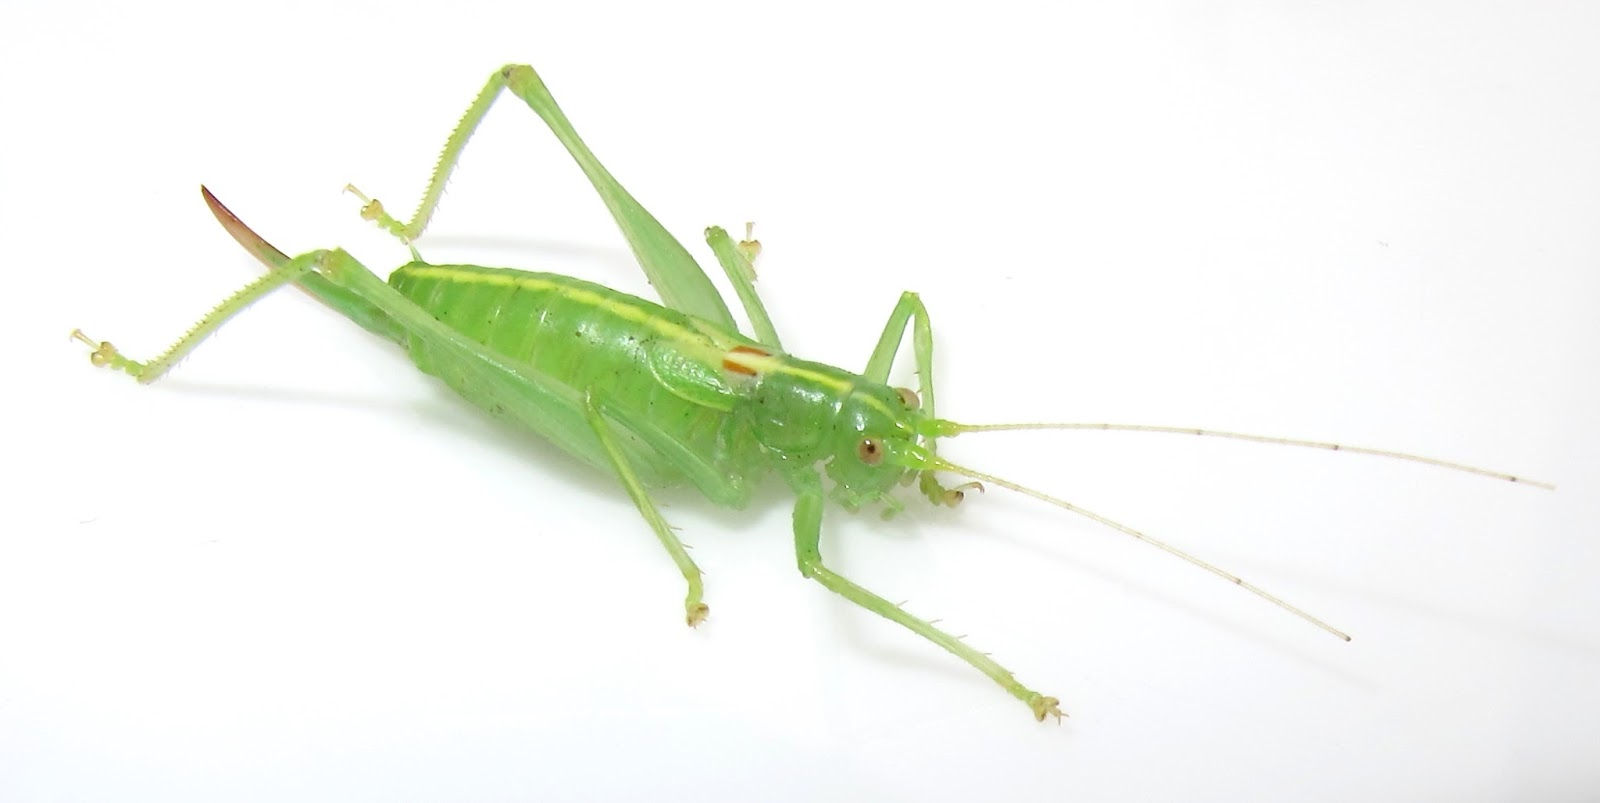 cricket bug